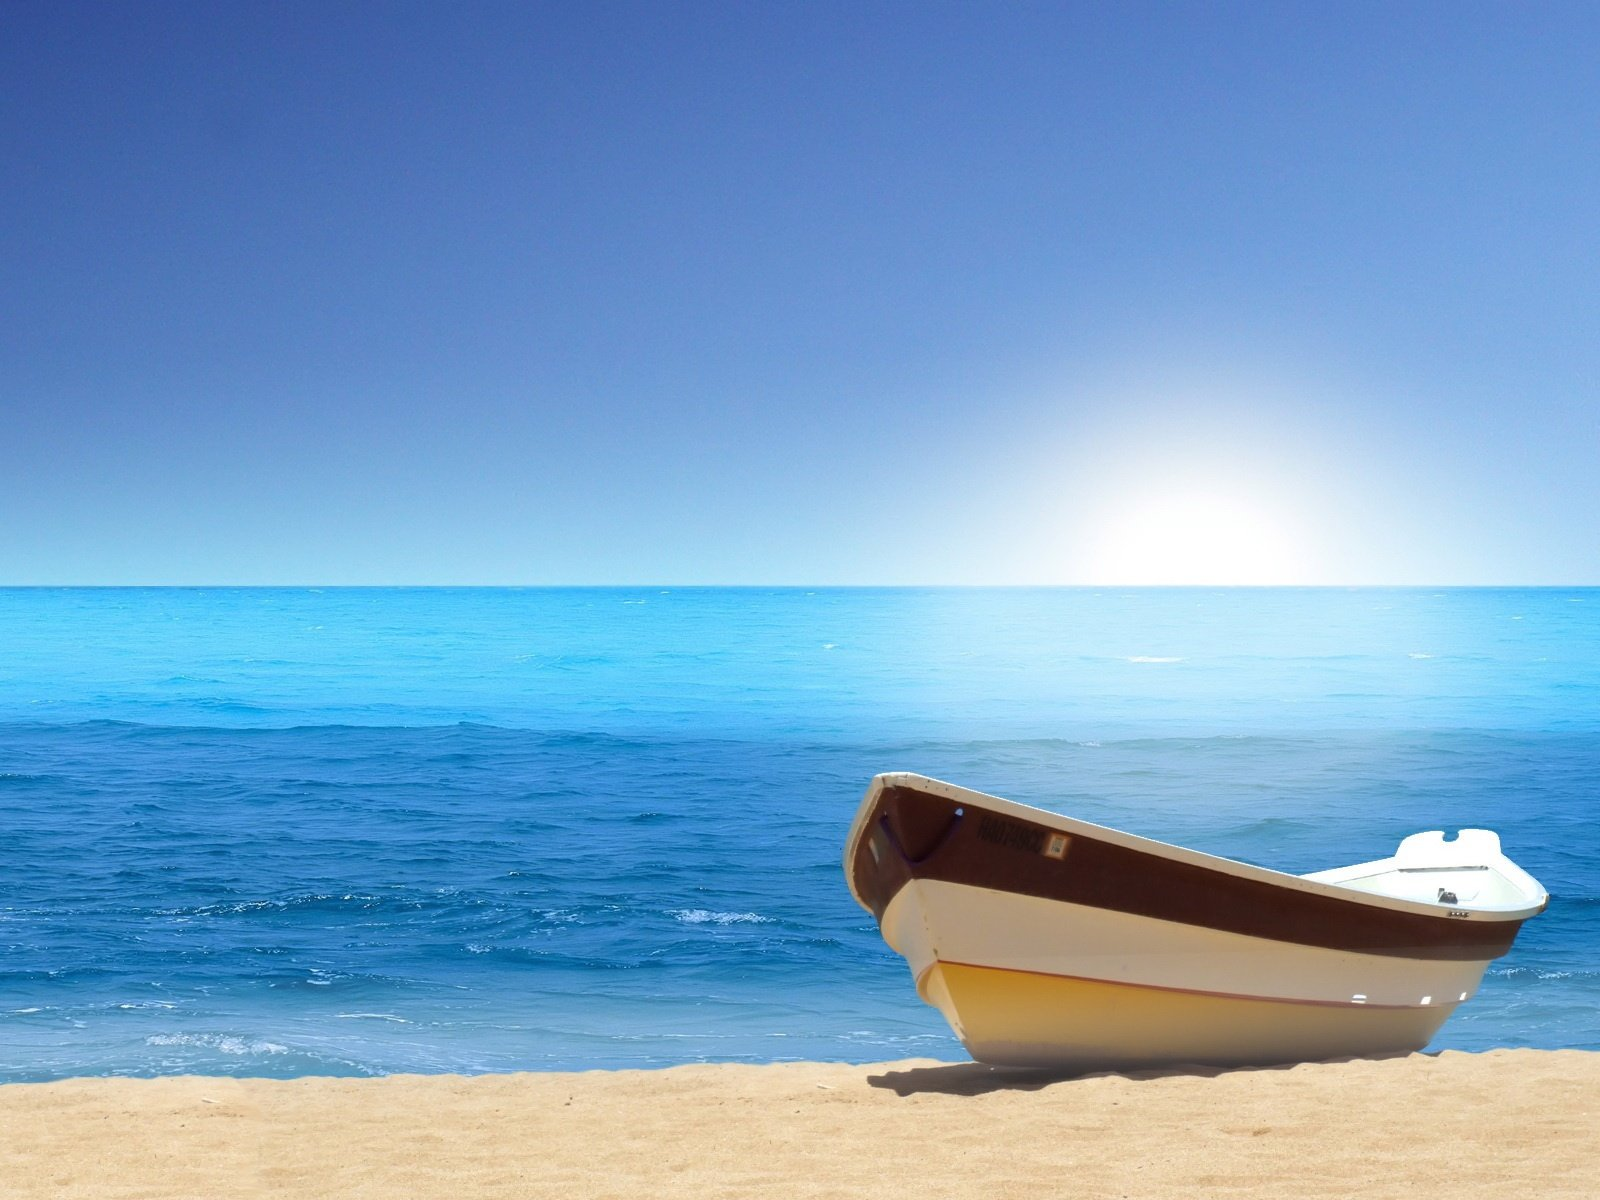 Boat Sea Beach Wallpapers HD Wallpapers 1600x1200